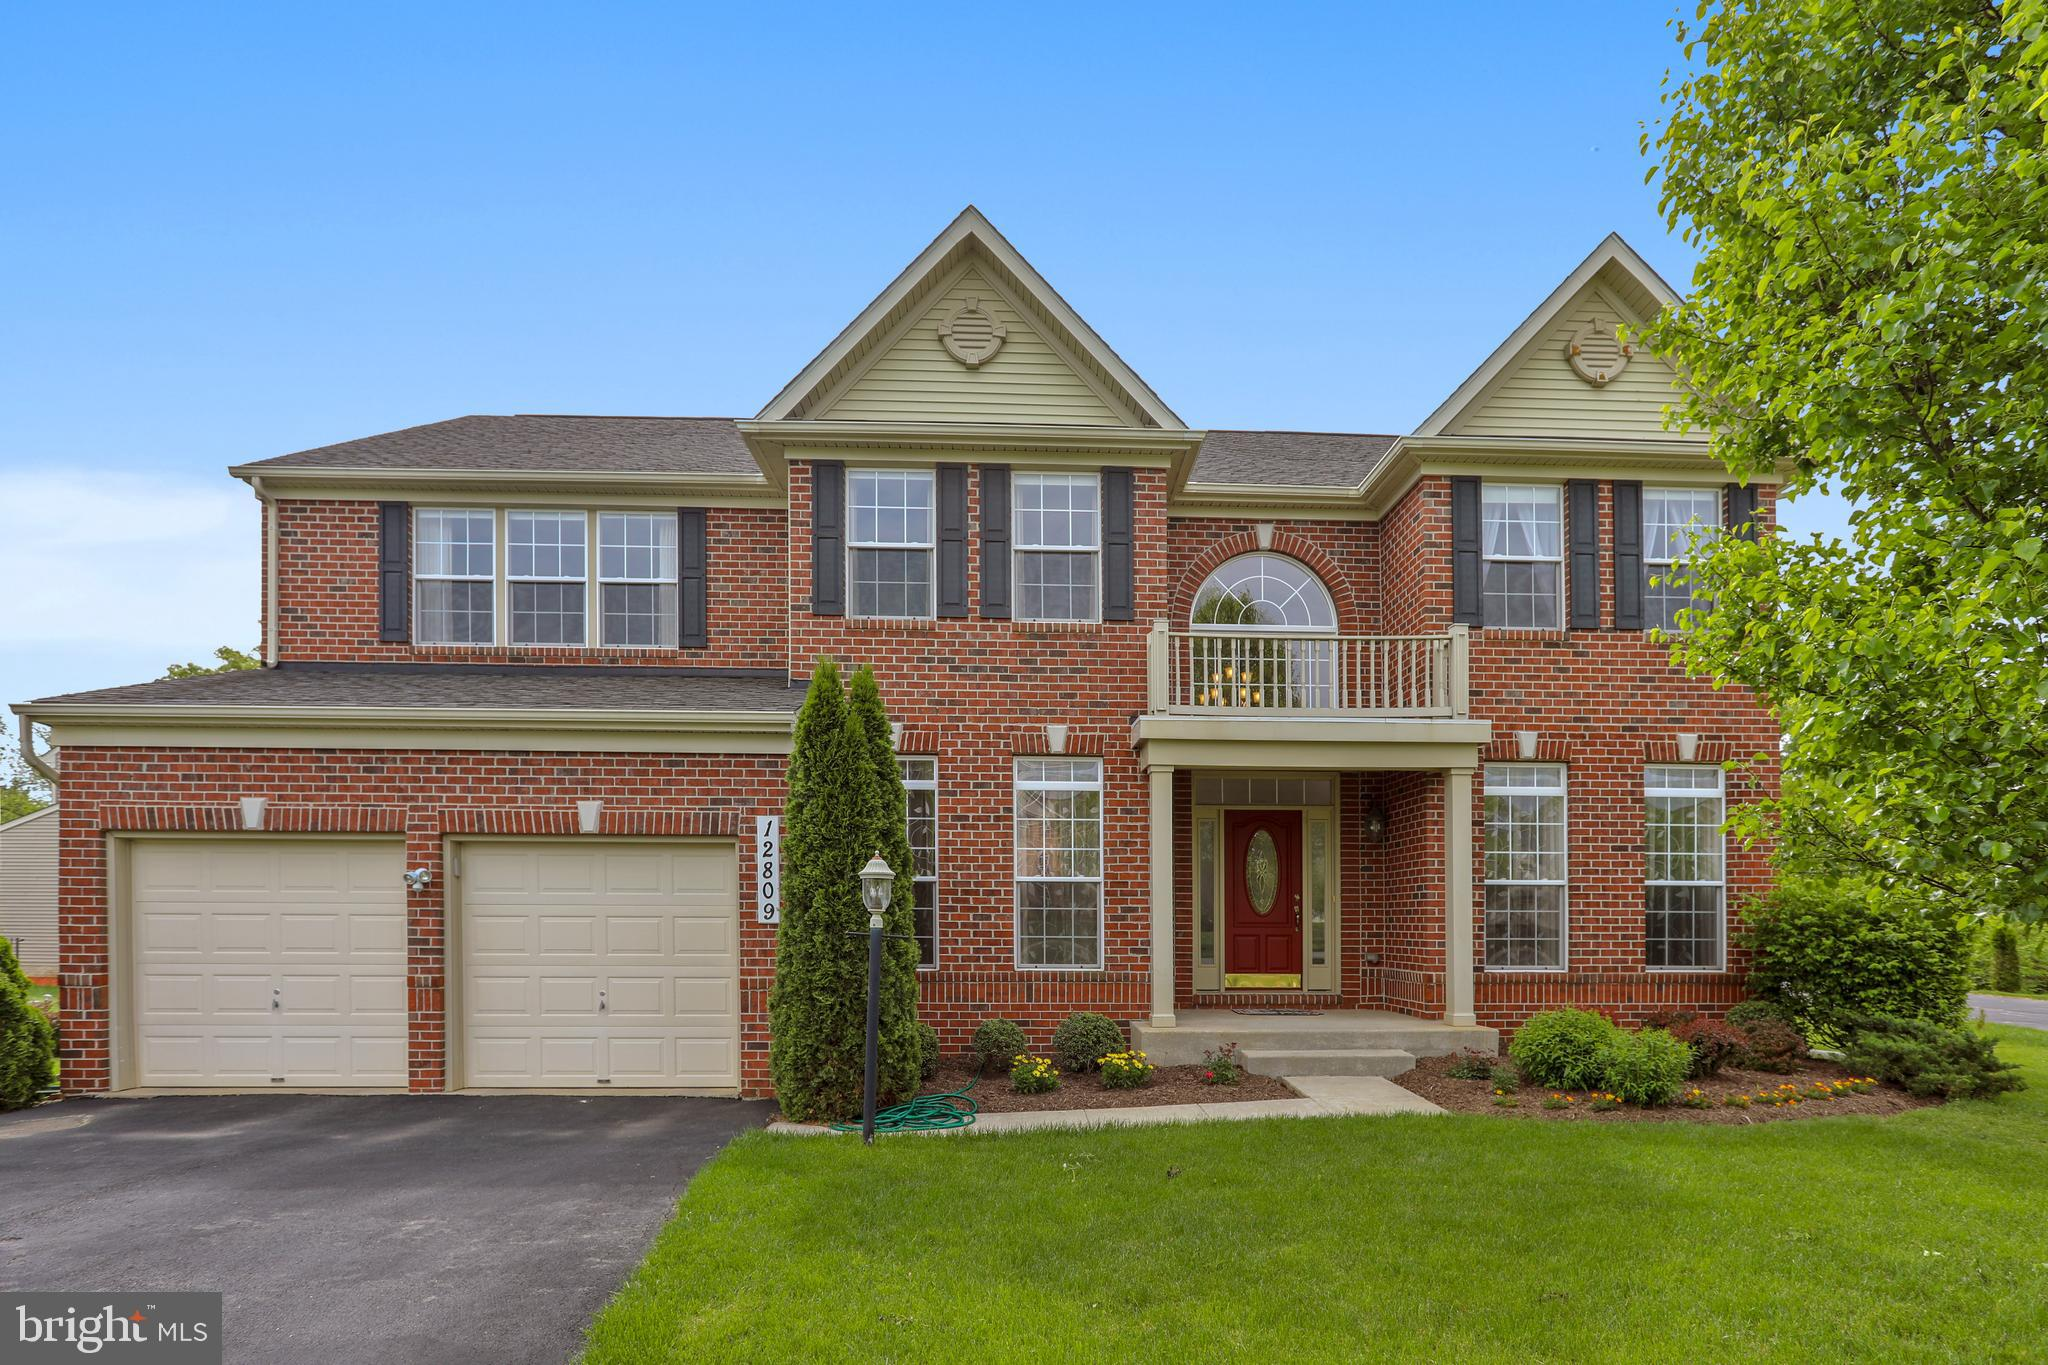 12809 PENNY LANE, SILVER SPRING, MD 20904